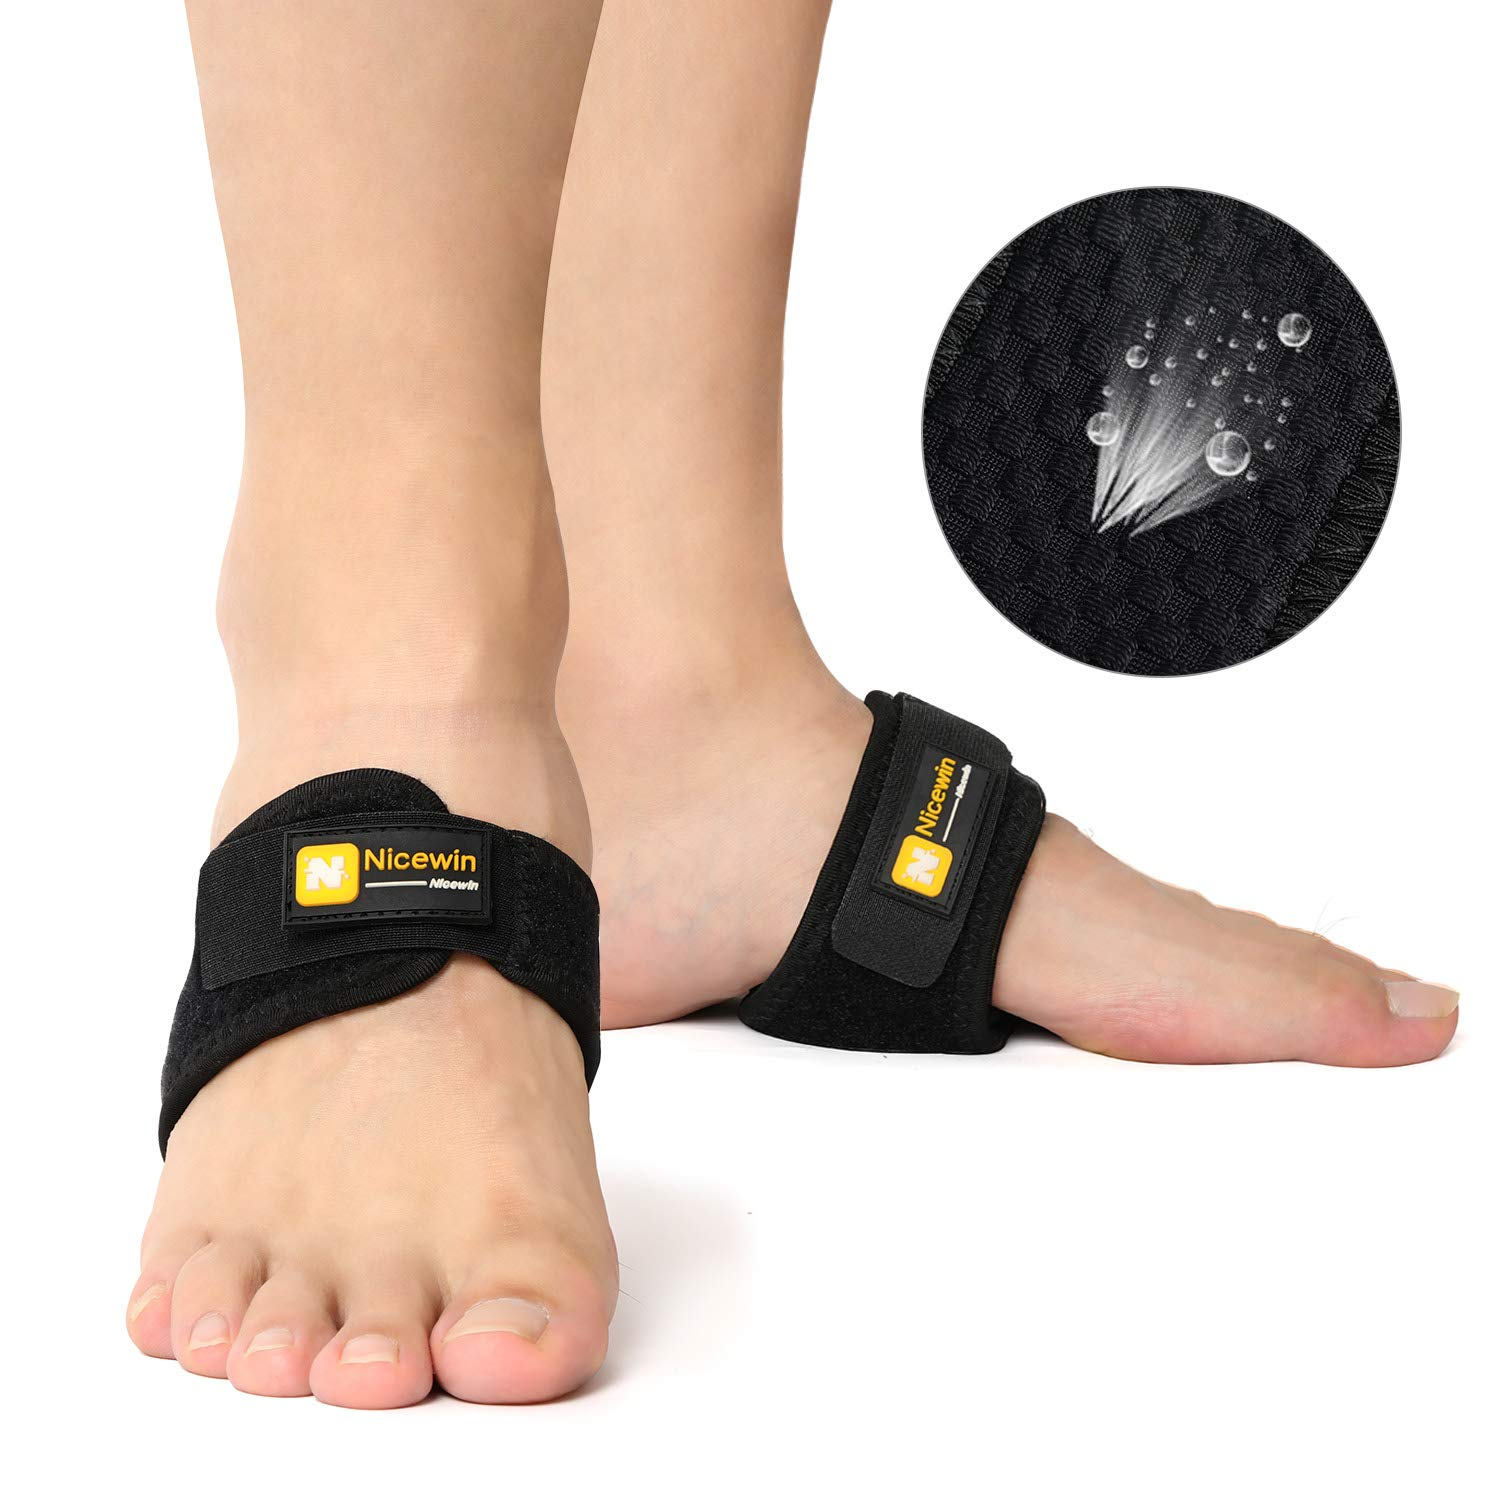 Arch Support Brace Adjustable Strap Snug Fit Cushions for Men Women Pain Relief of Drop Foot, Flat Feet, High Arches, Heel Spurs, One Size Fits Most by NICEWIN